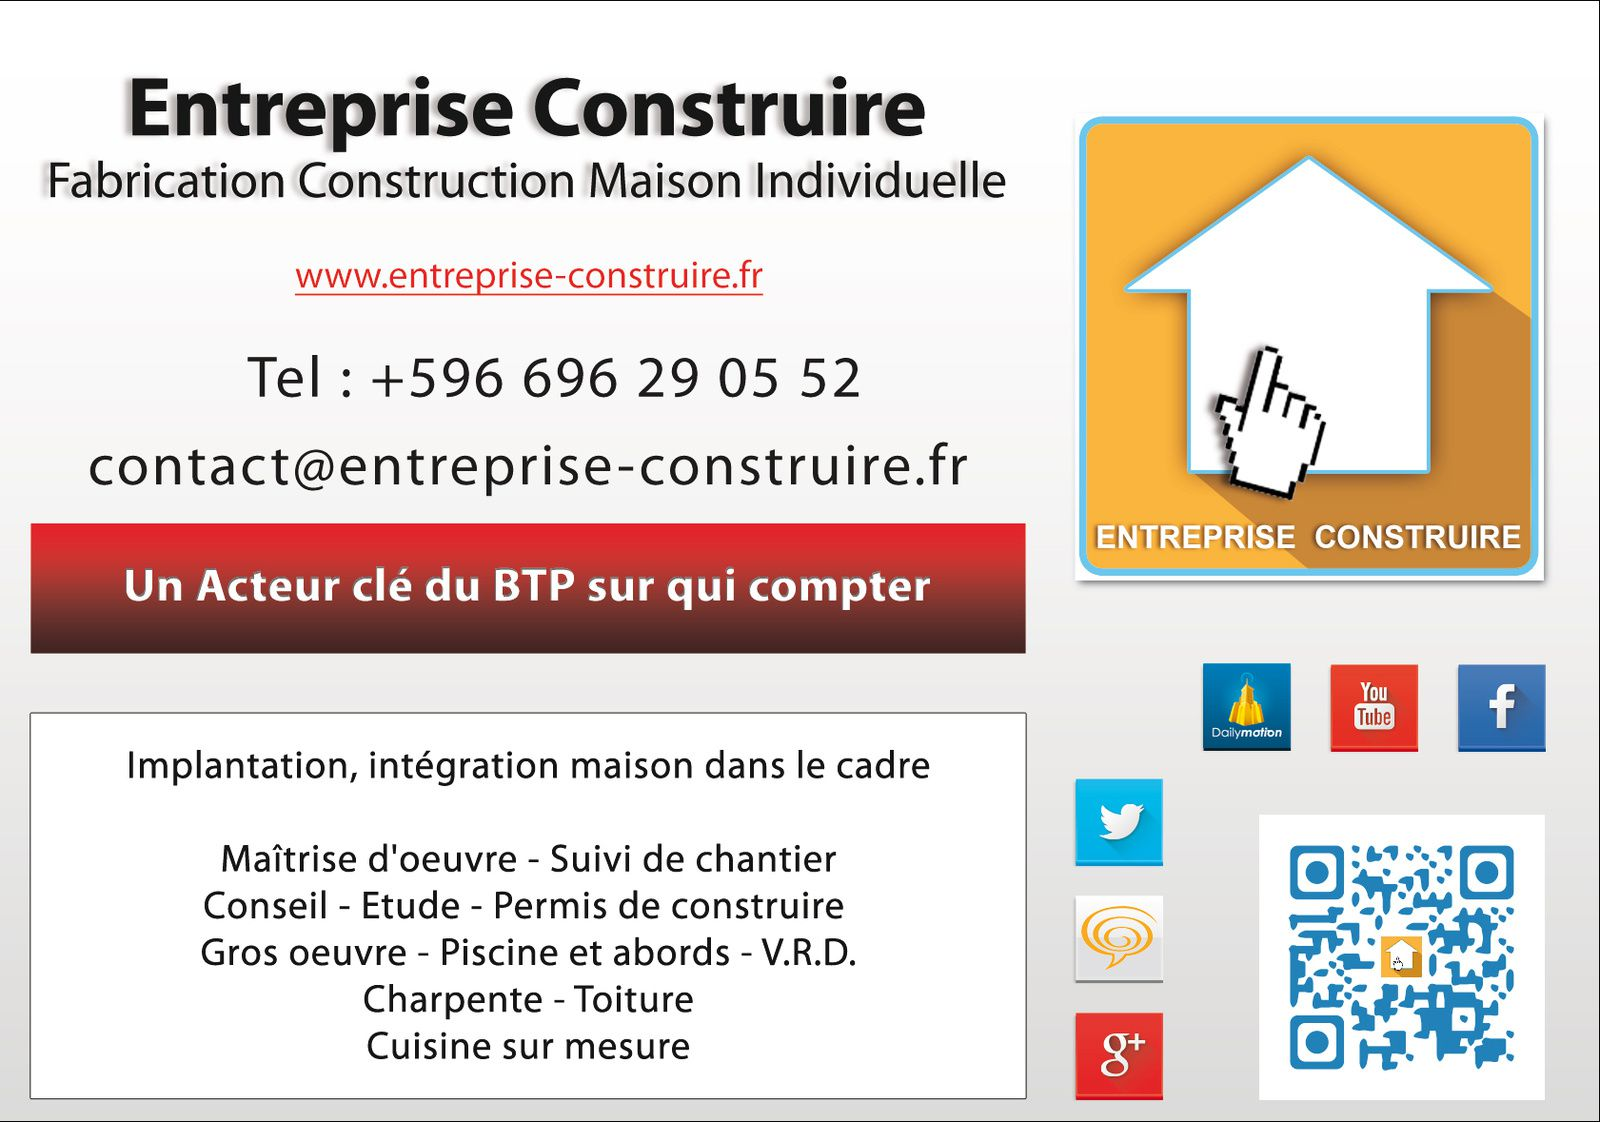 3d trade center for Entreprise de construction maison individuelle